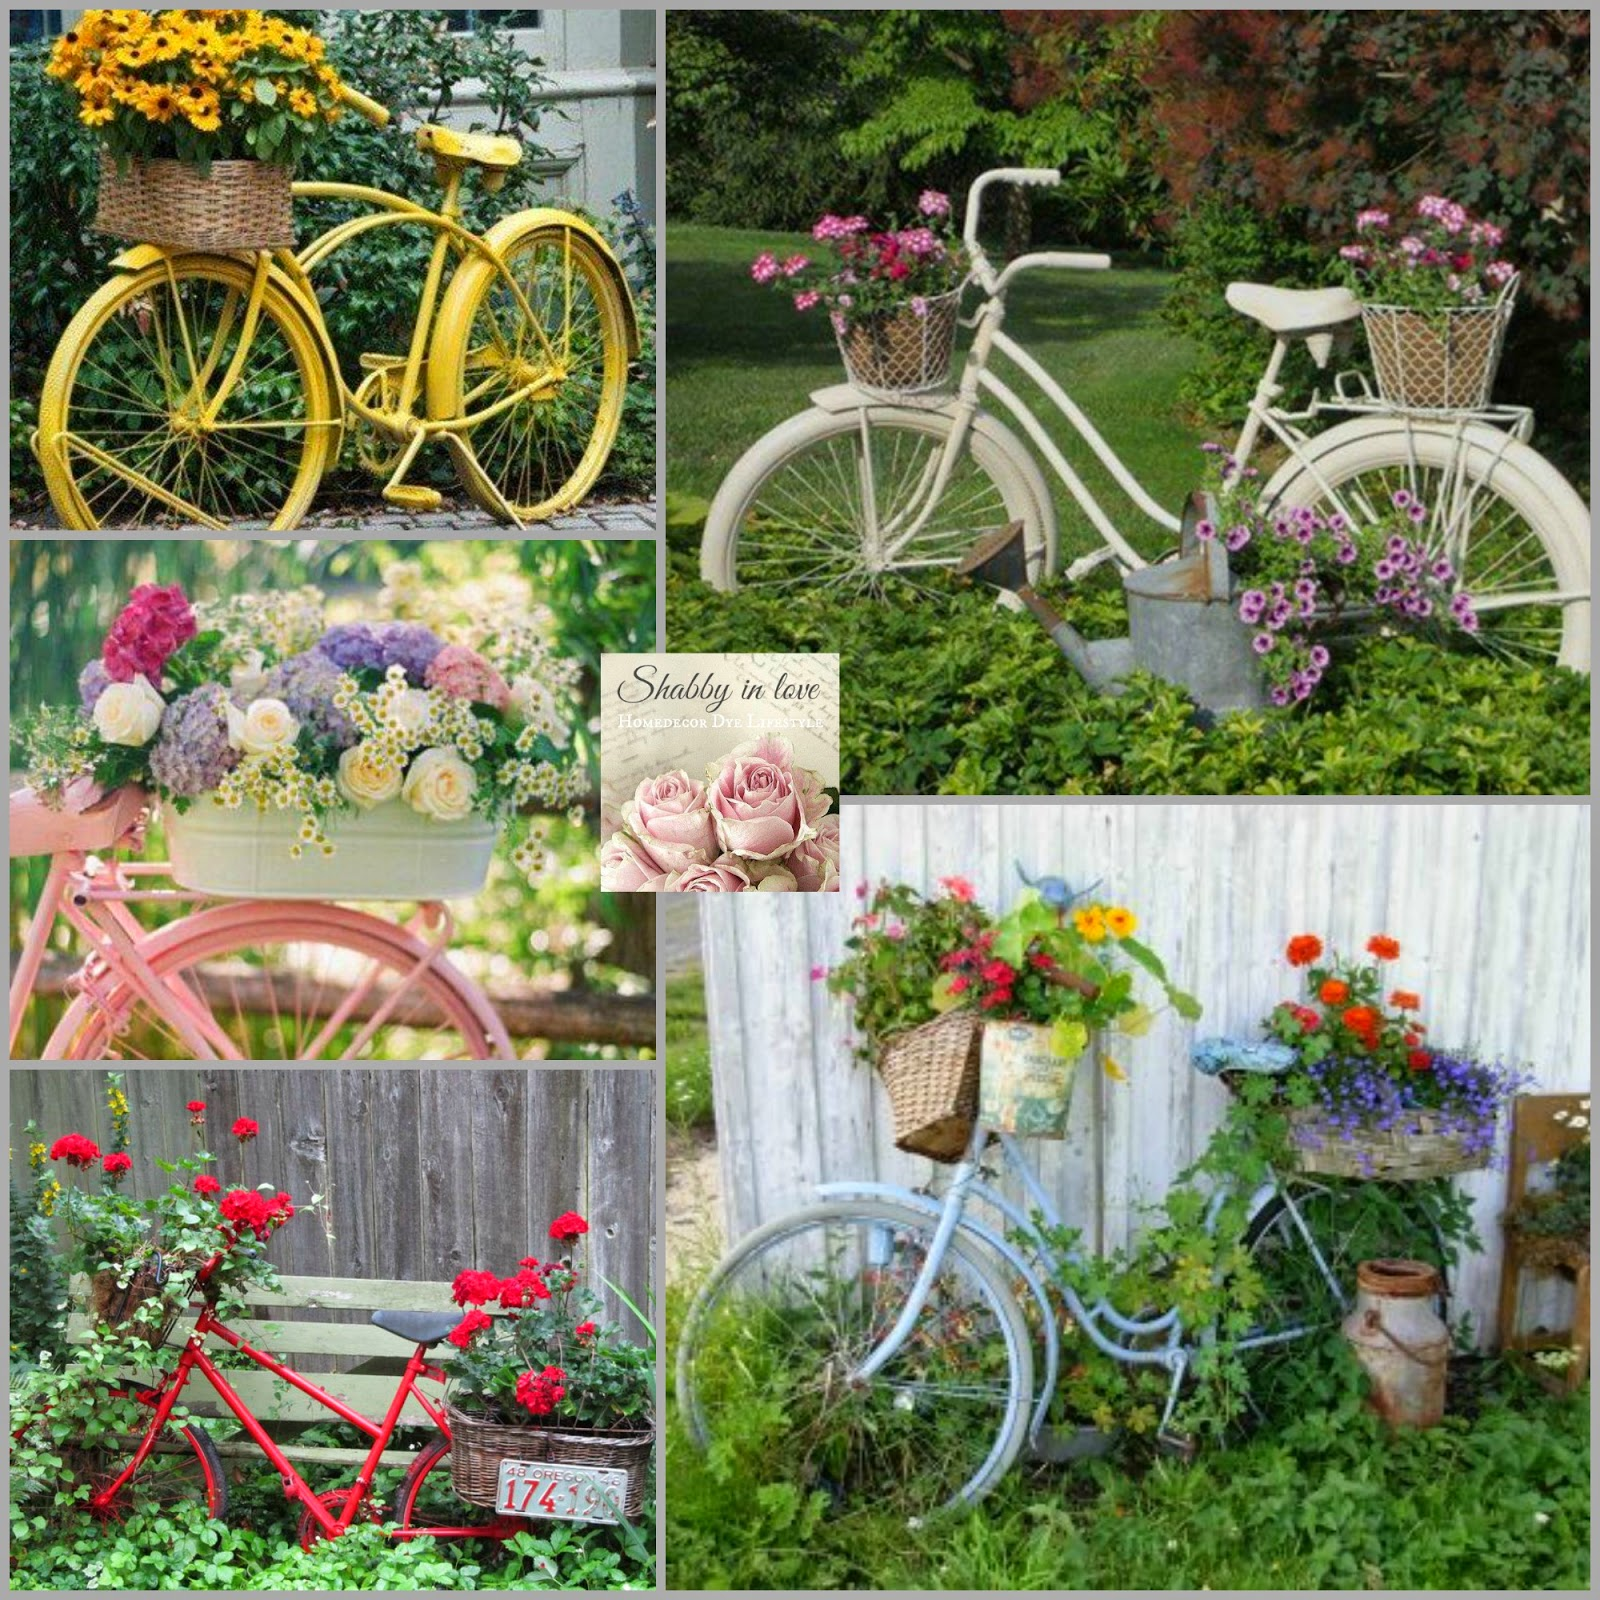 Shabby in love lovely garden container ideas for Flower garden decorations